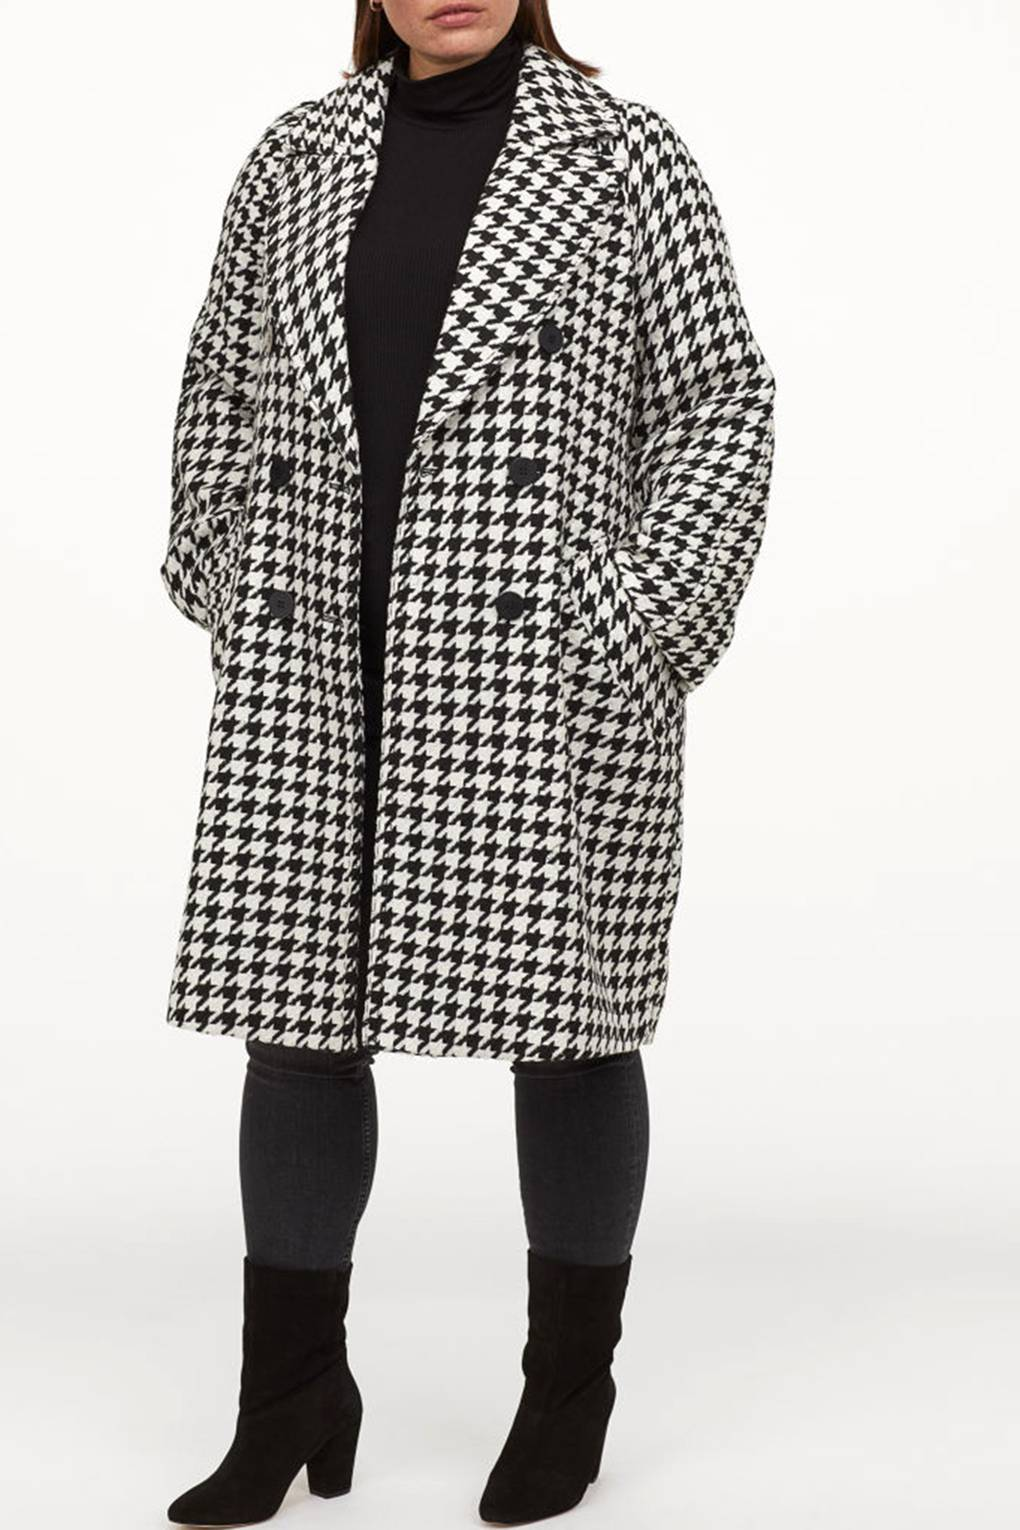 This H&M dogtooth coat is about to be all over your